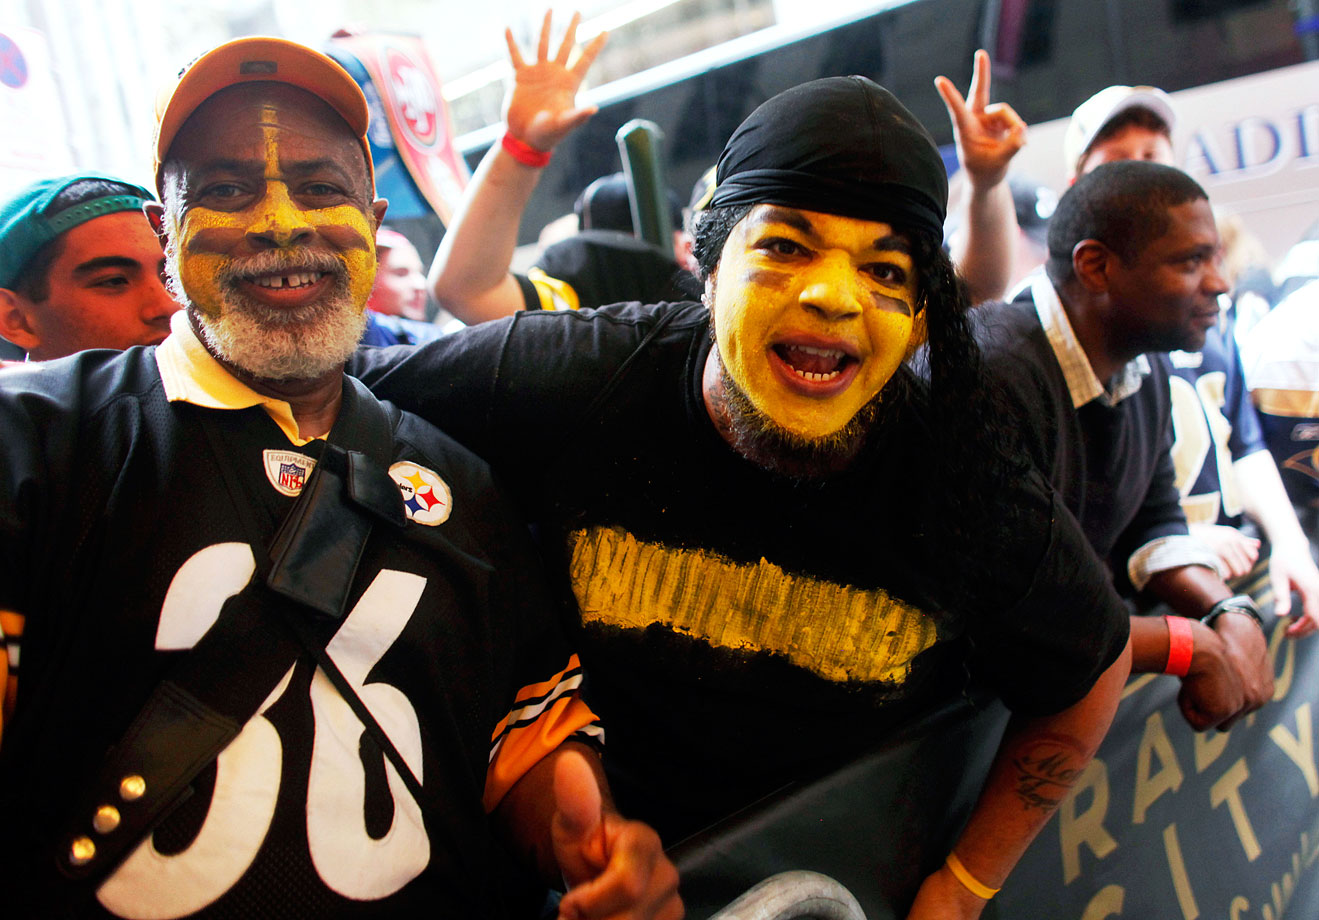 Pittsburgh Steelers fans in 2011.